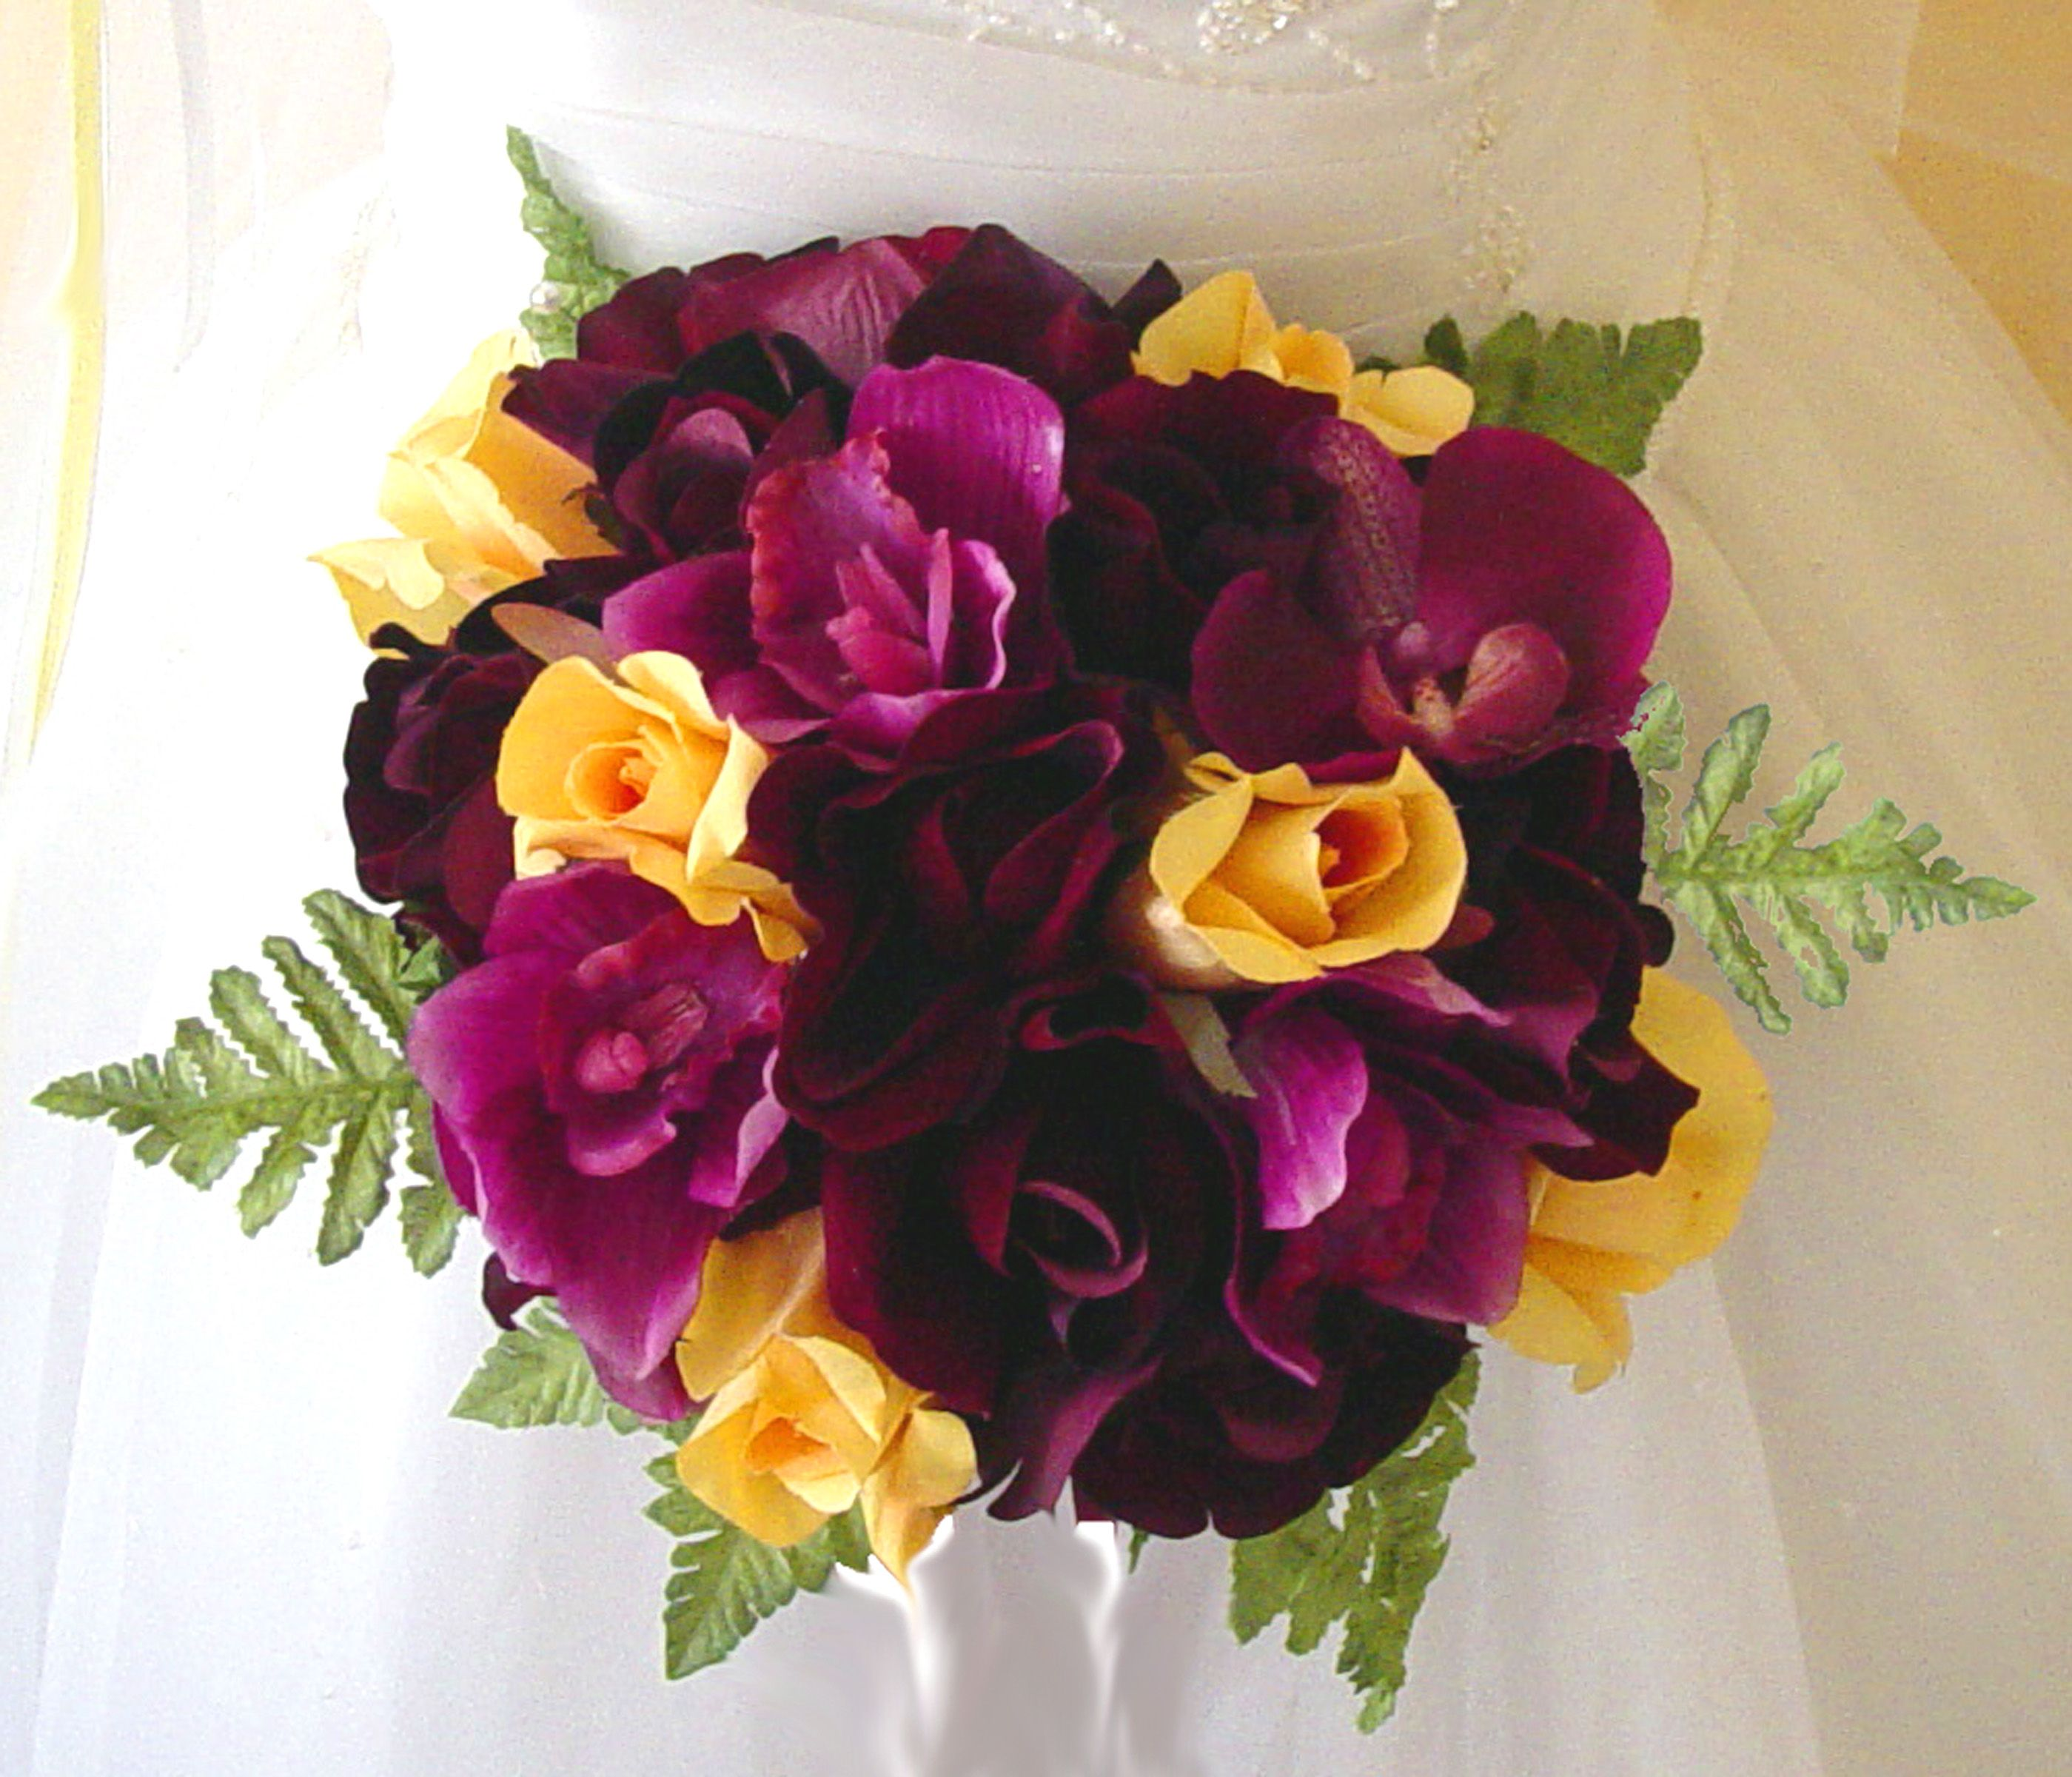 jewel tone wedding flowers Jewel tone wedding flowers